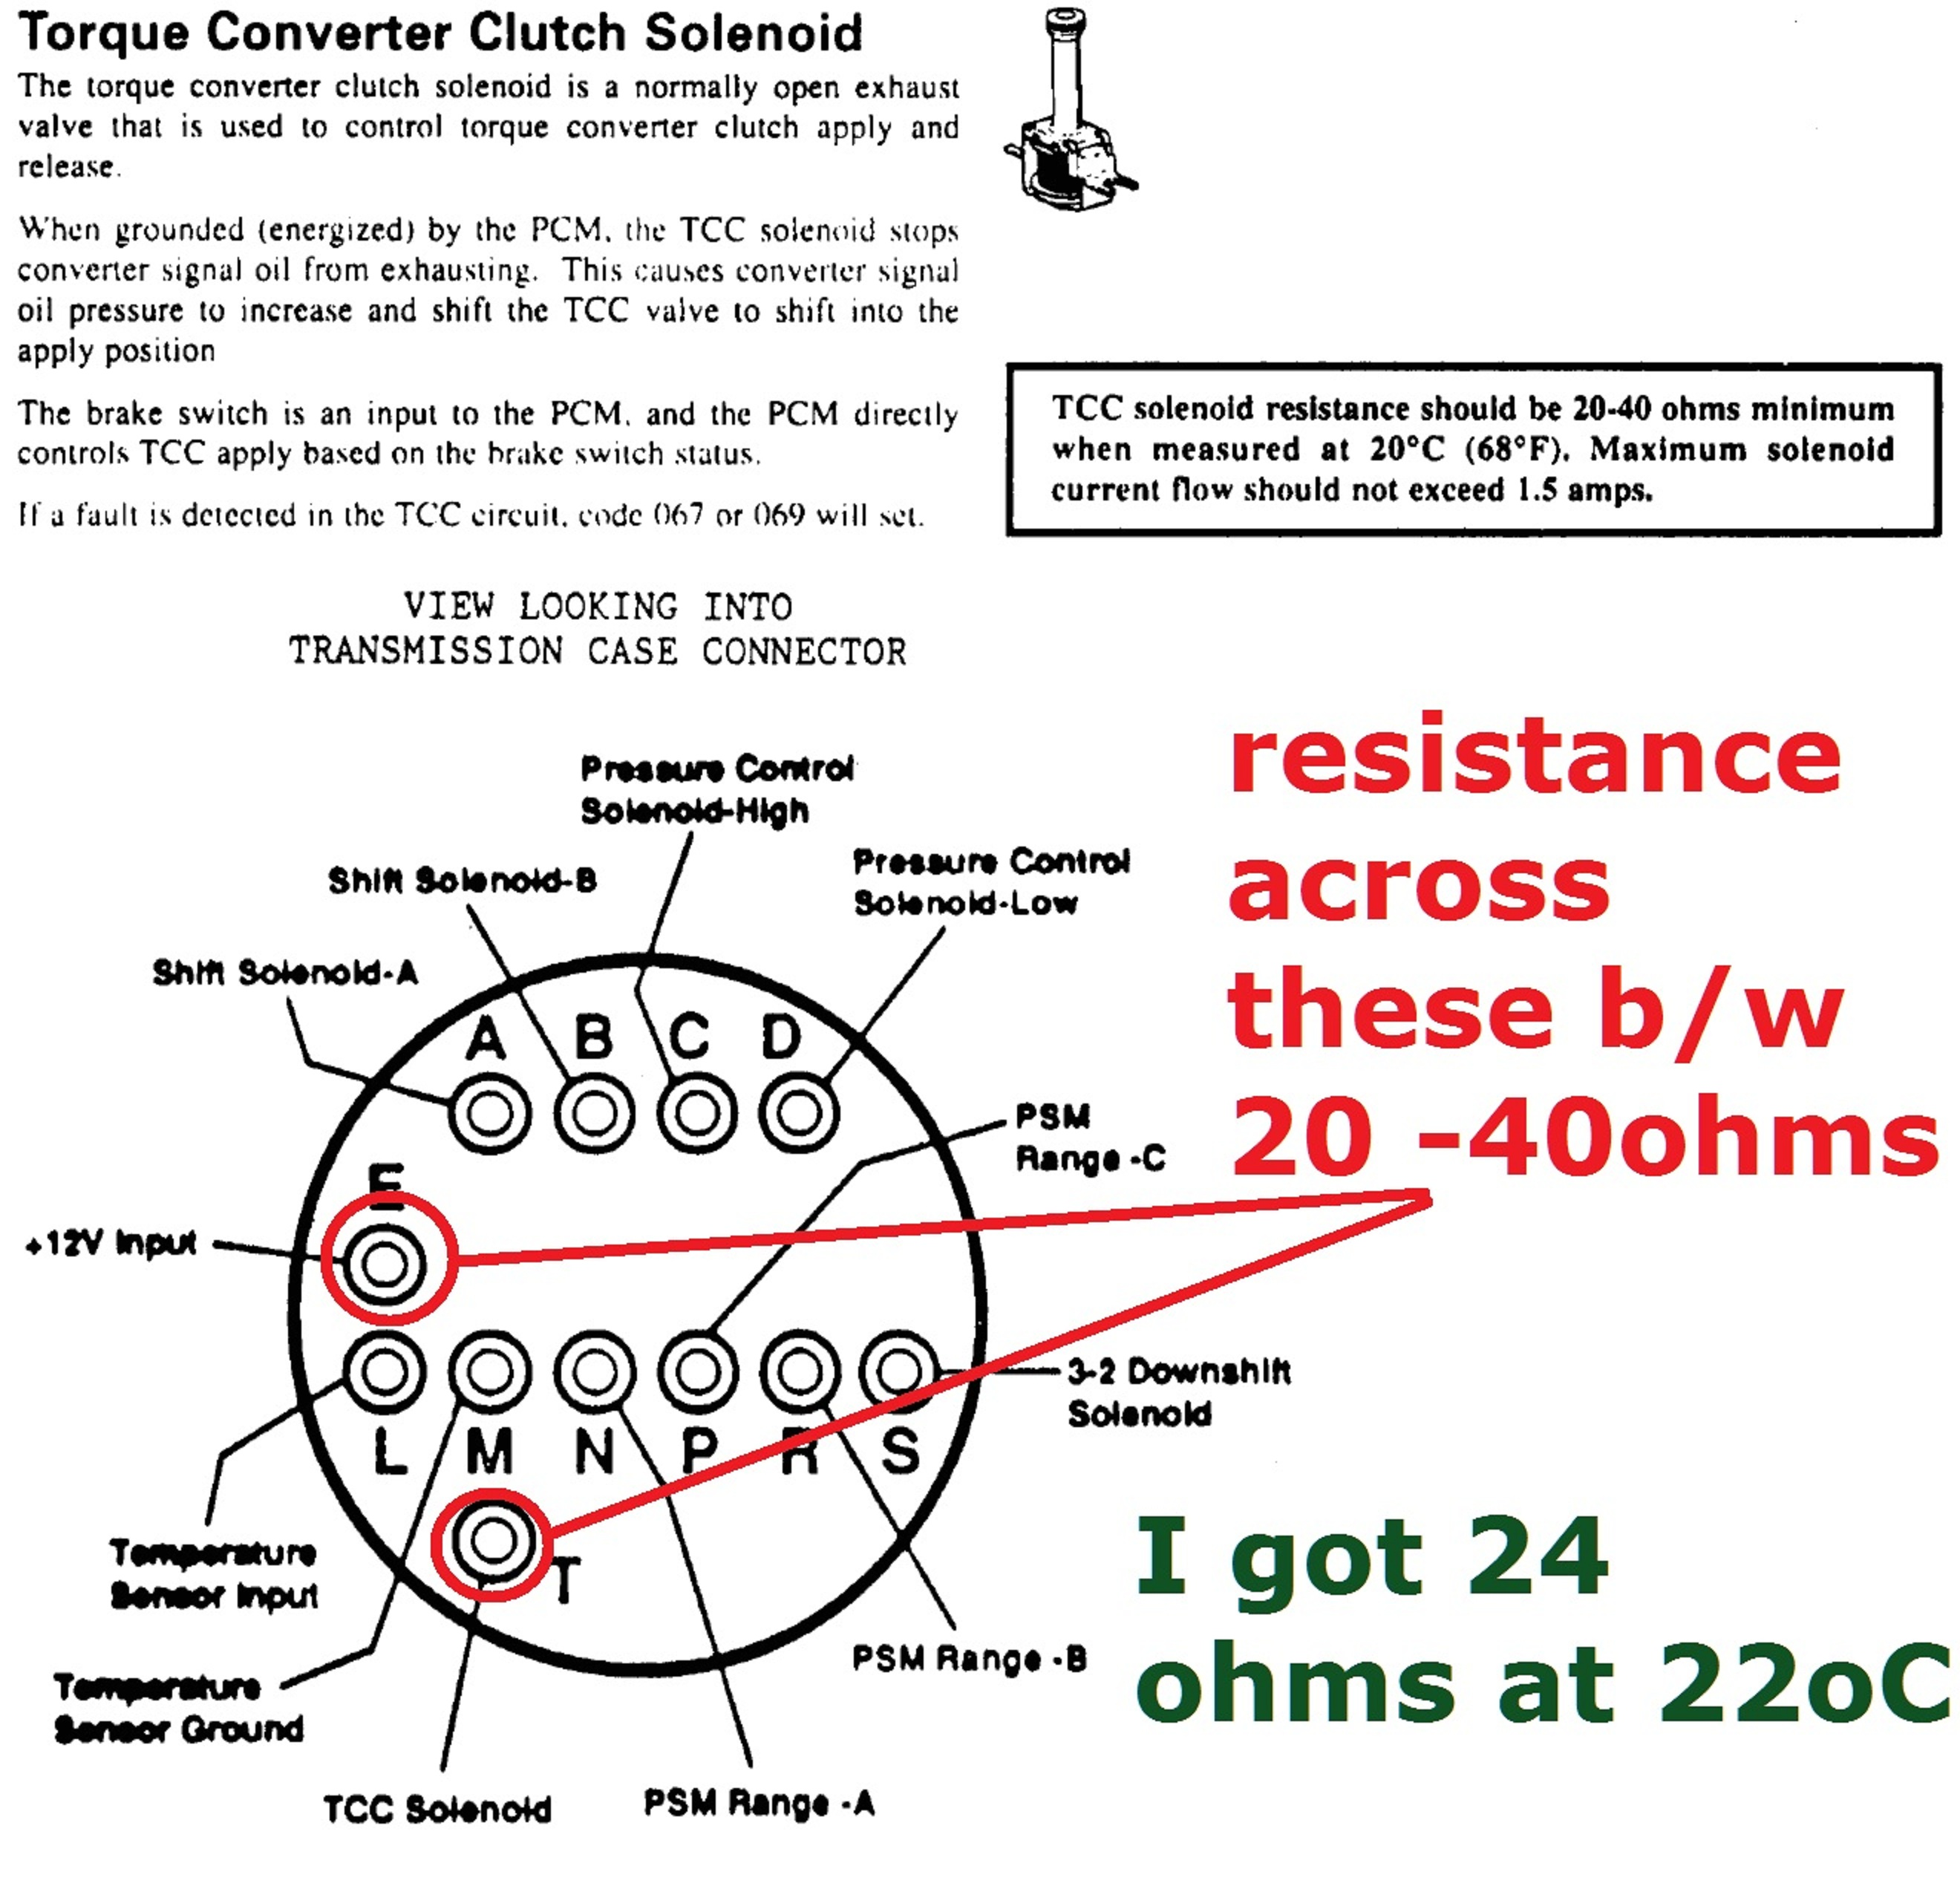 Click image for larger version  Name:Tcc solenoid texting.jpg Views:12845 Size:872.9 KB ID:52719